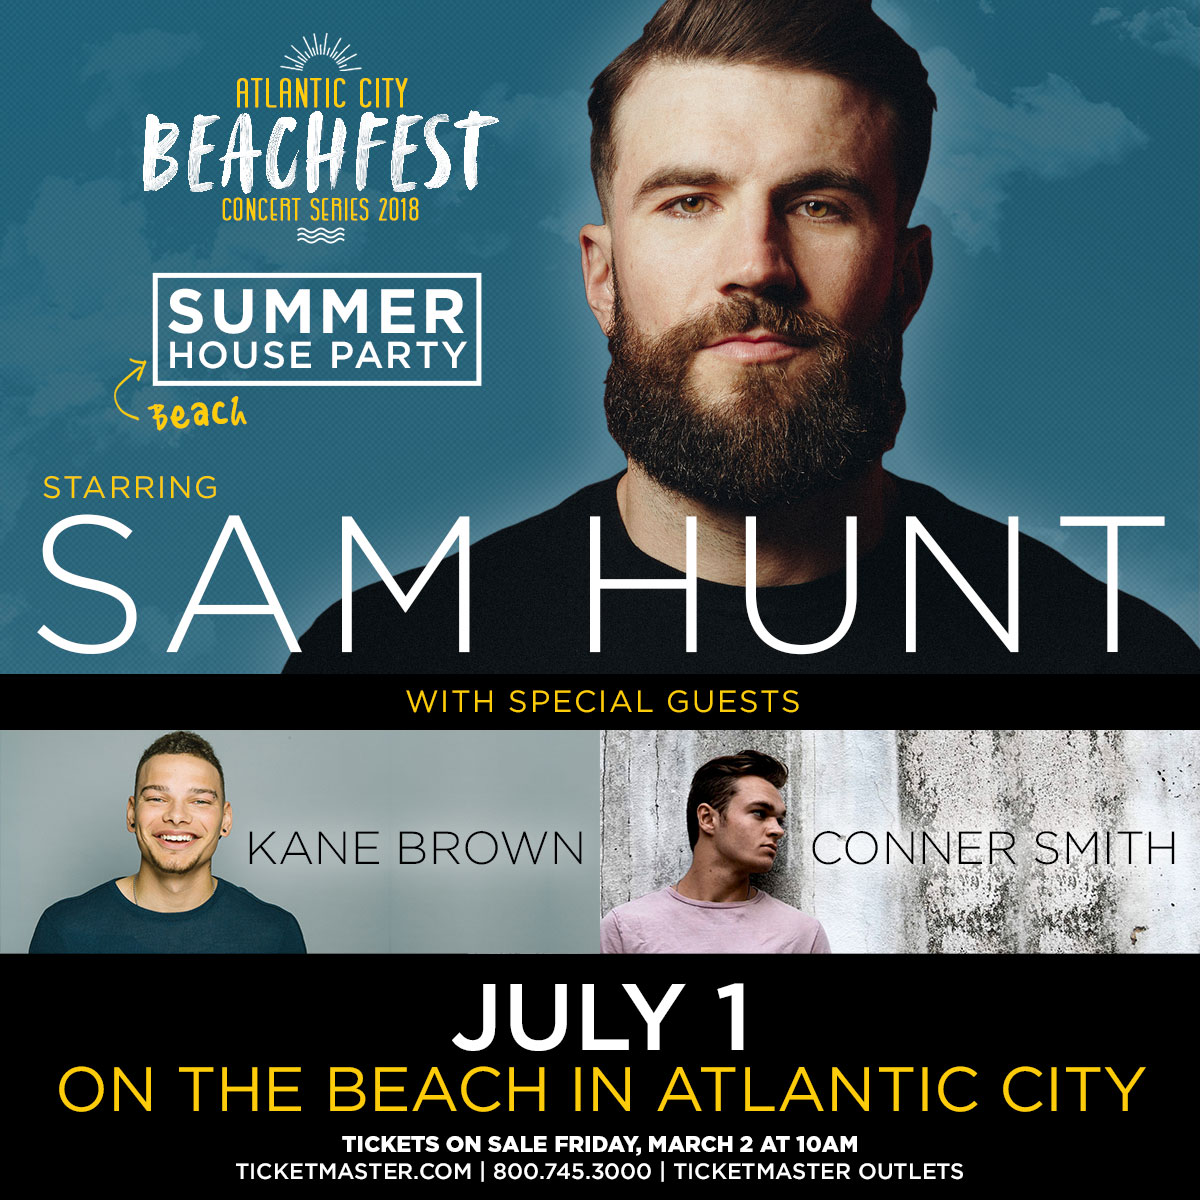 Sam Hunt - Atlantic City Beach Concert